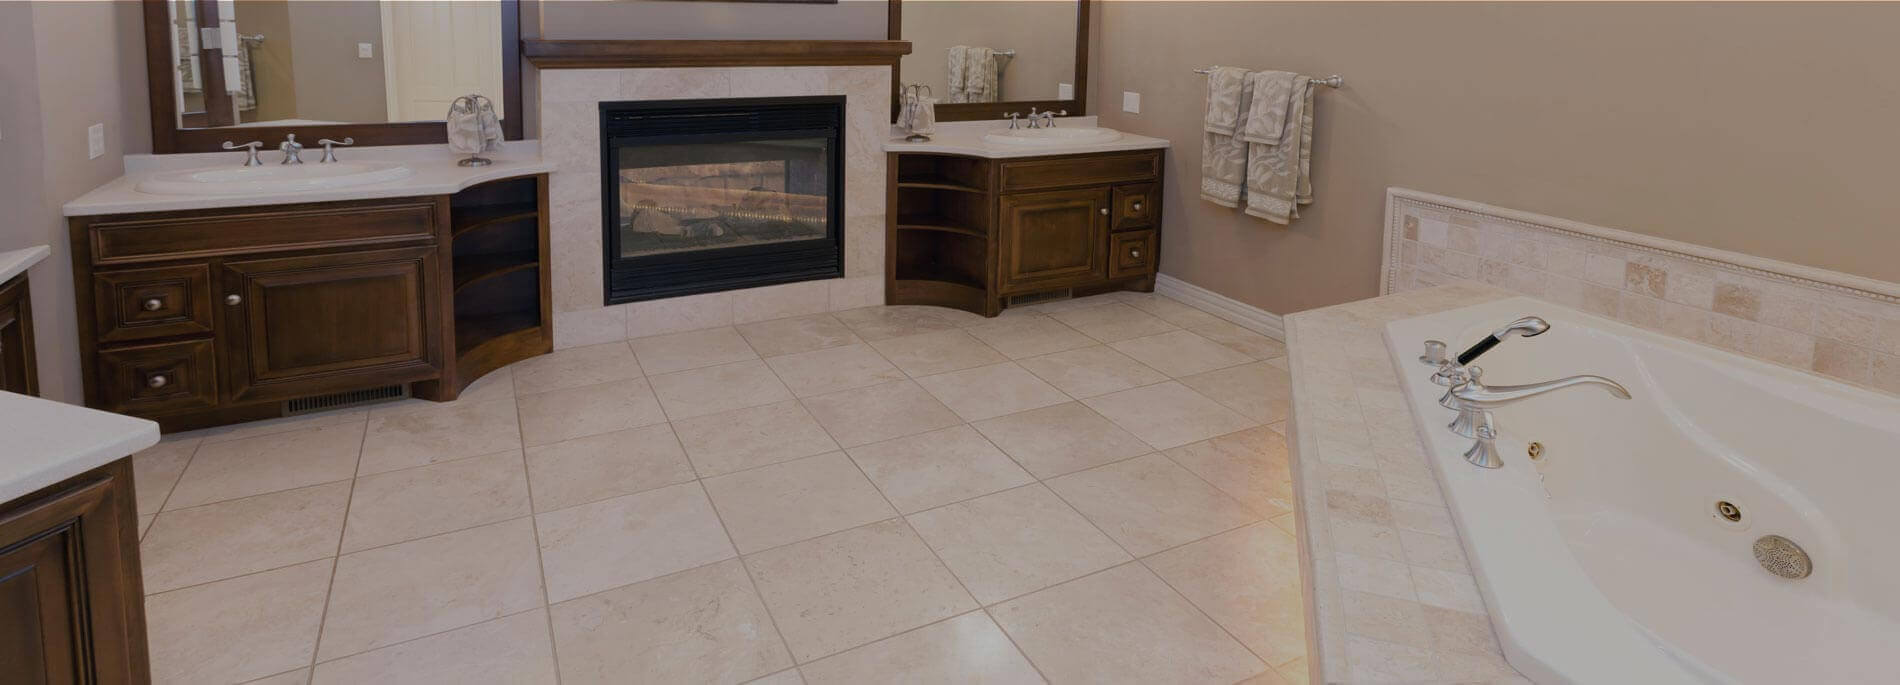 Tile stores near me luxury vinyl tile 100 tile flooring for Linoleum flooring near me